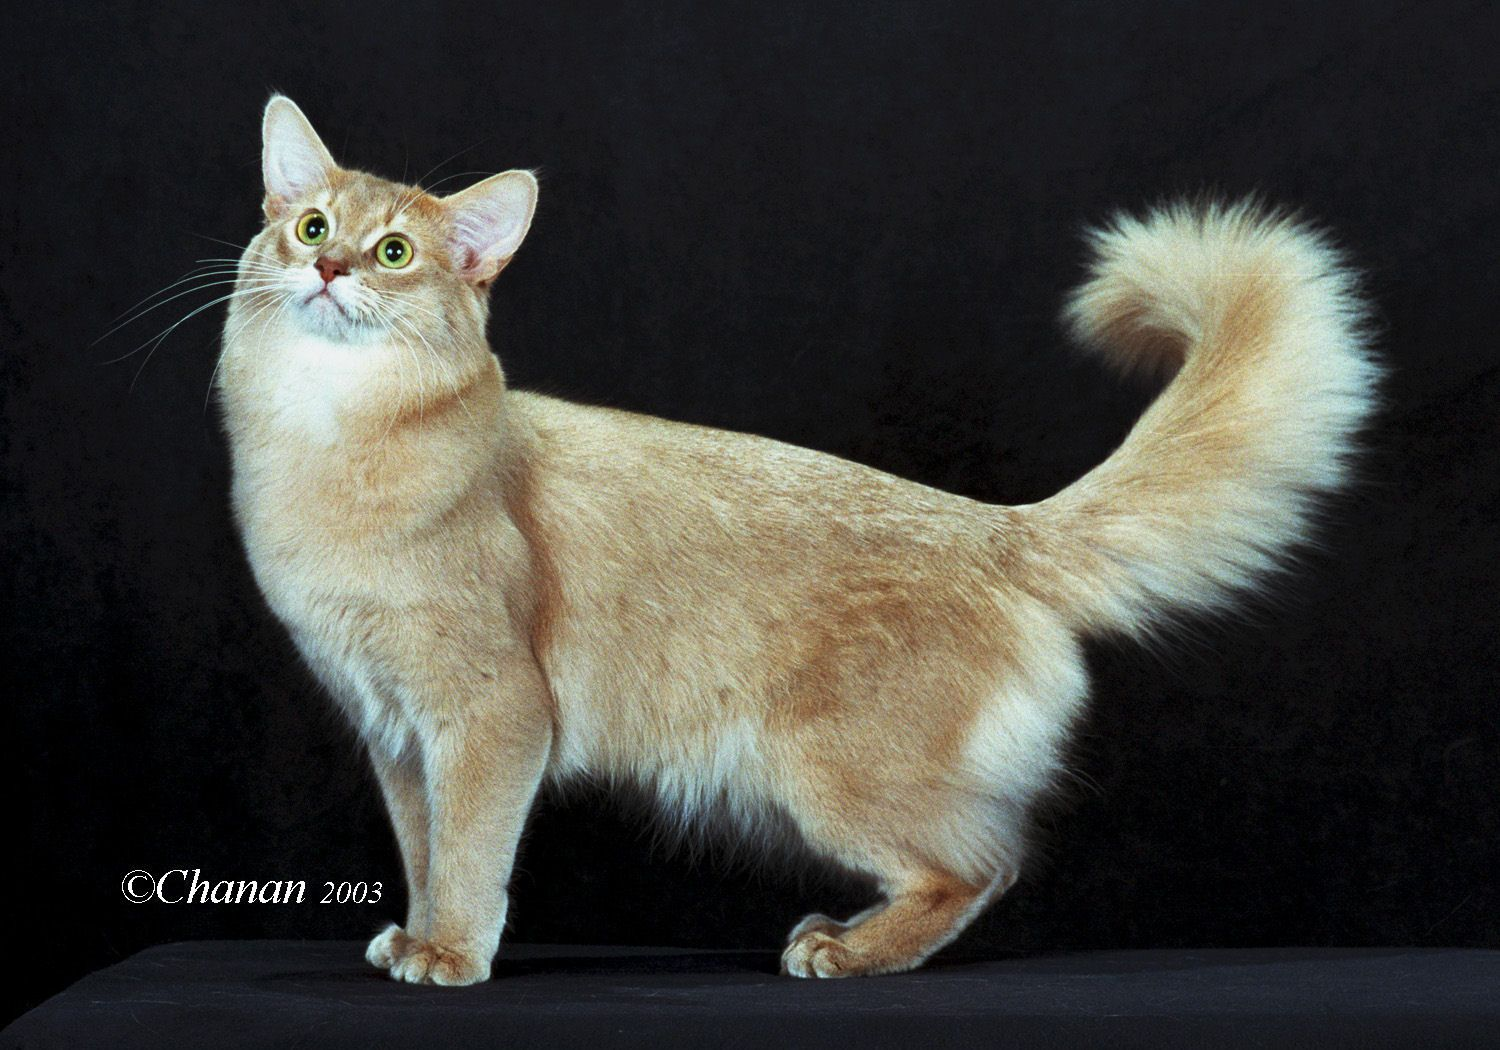 Somali Cat reference, Cats and kittens, Warrior cats